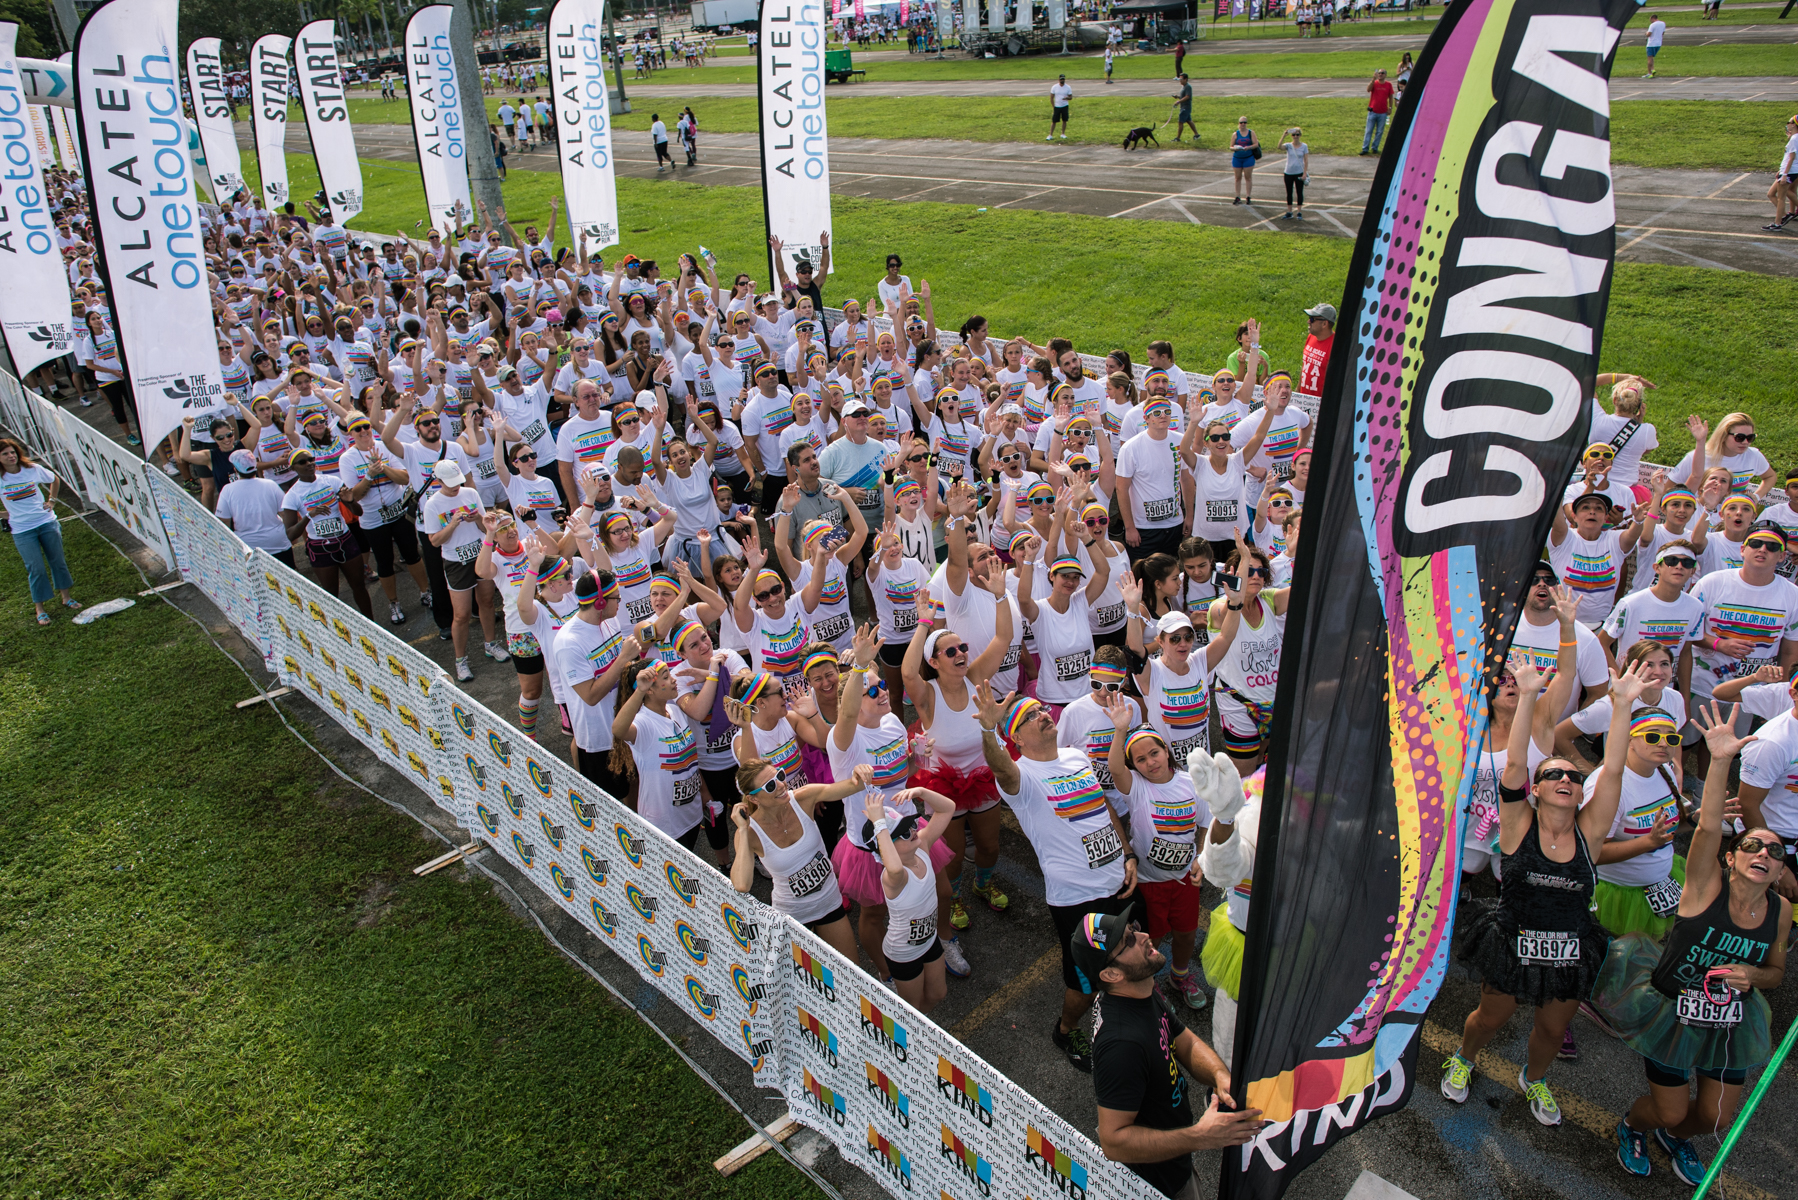 Color_Run-2.jpg